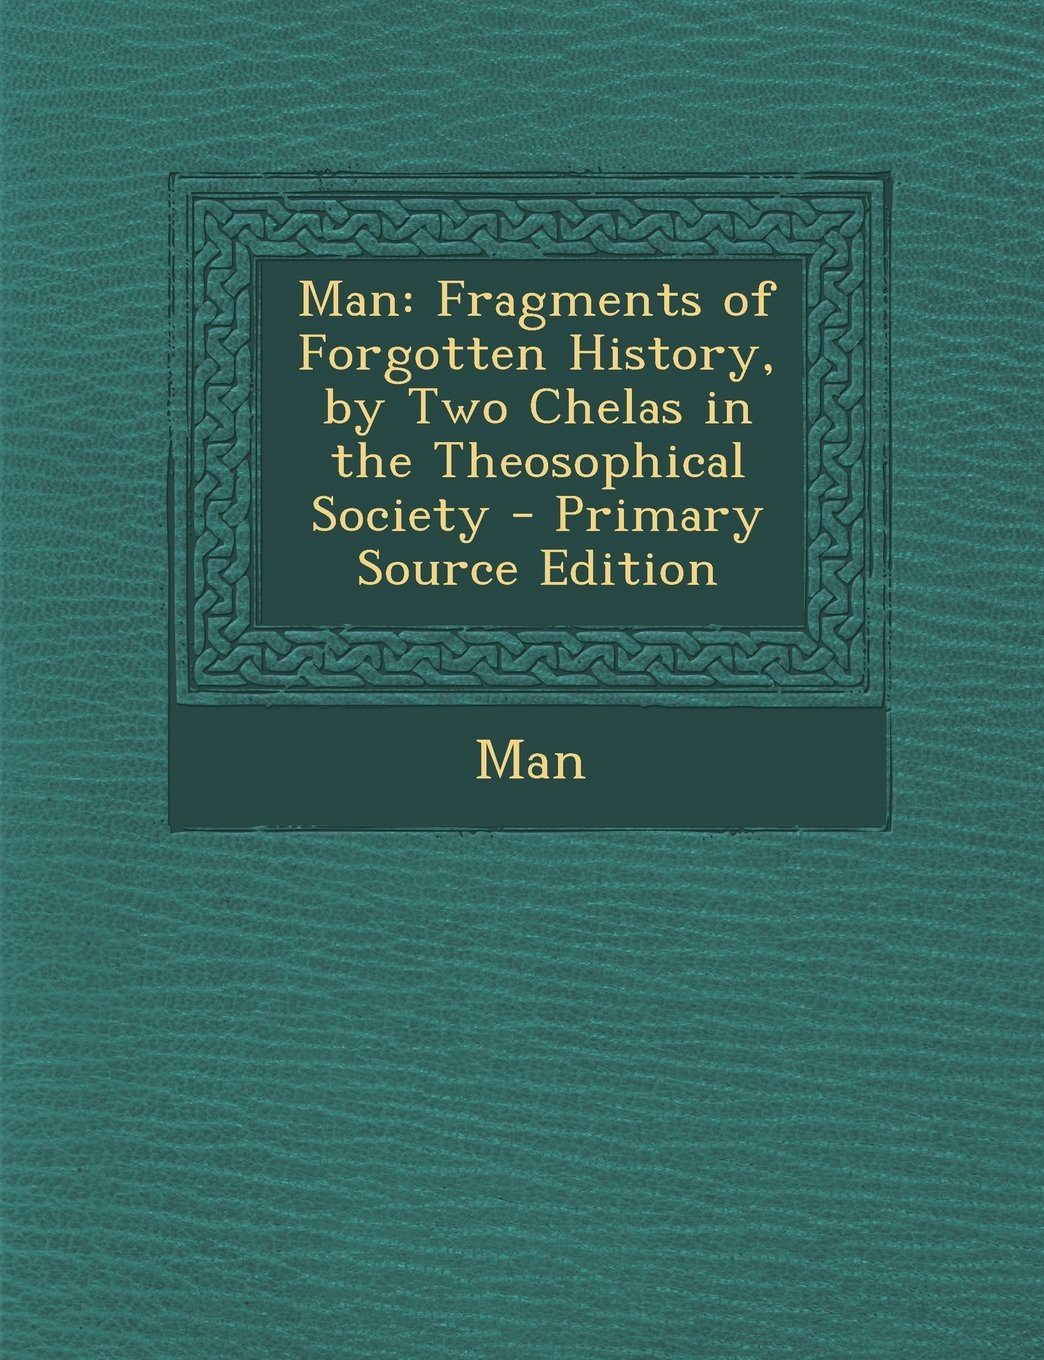 Download Man: Fragments of Forgotten History, by Two Chelas in the Theosophical Society (Japanese Edition) PDF